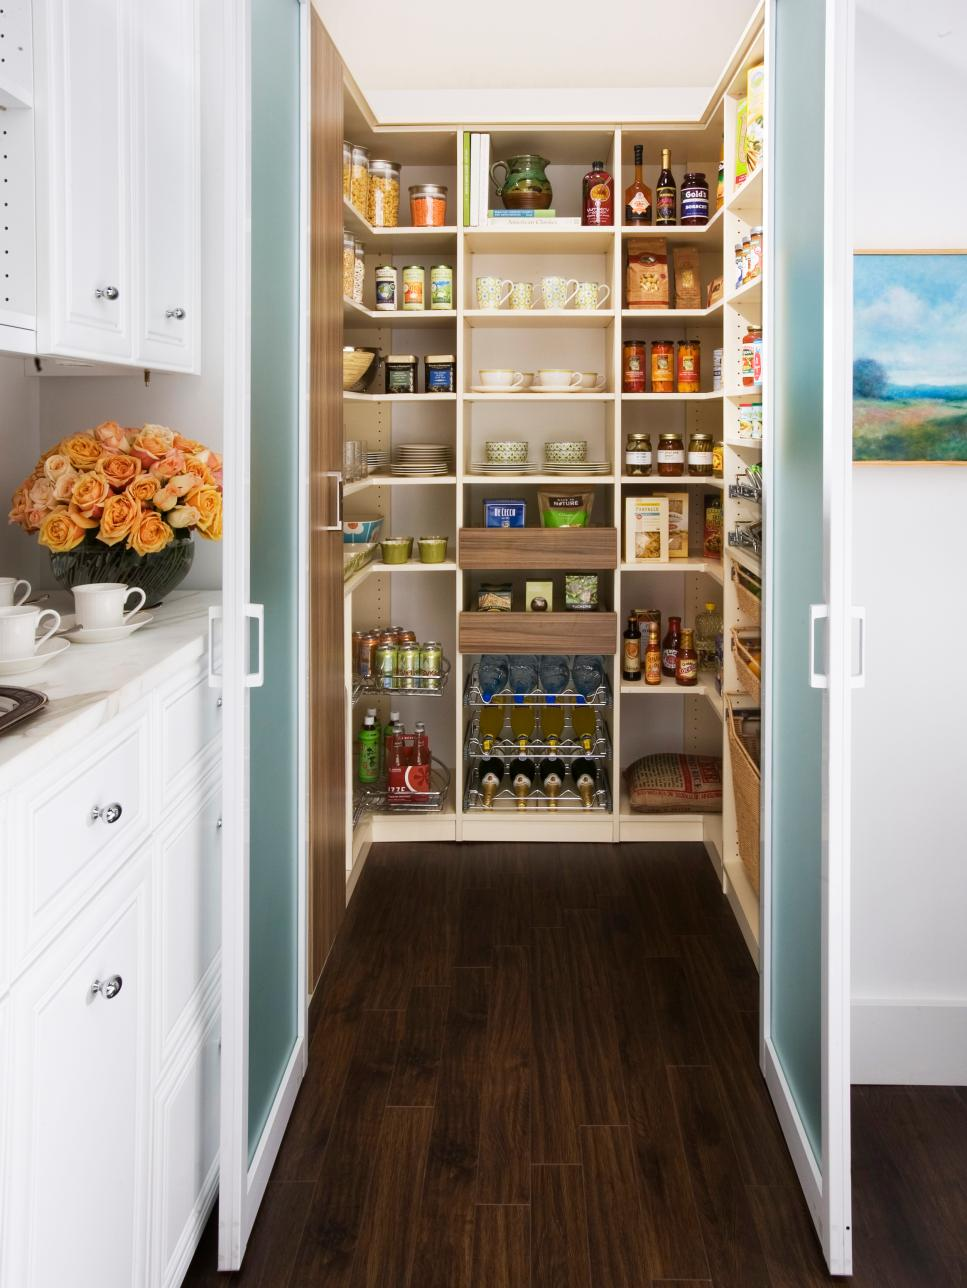 kitchen storage ideas | hgtv